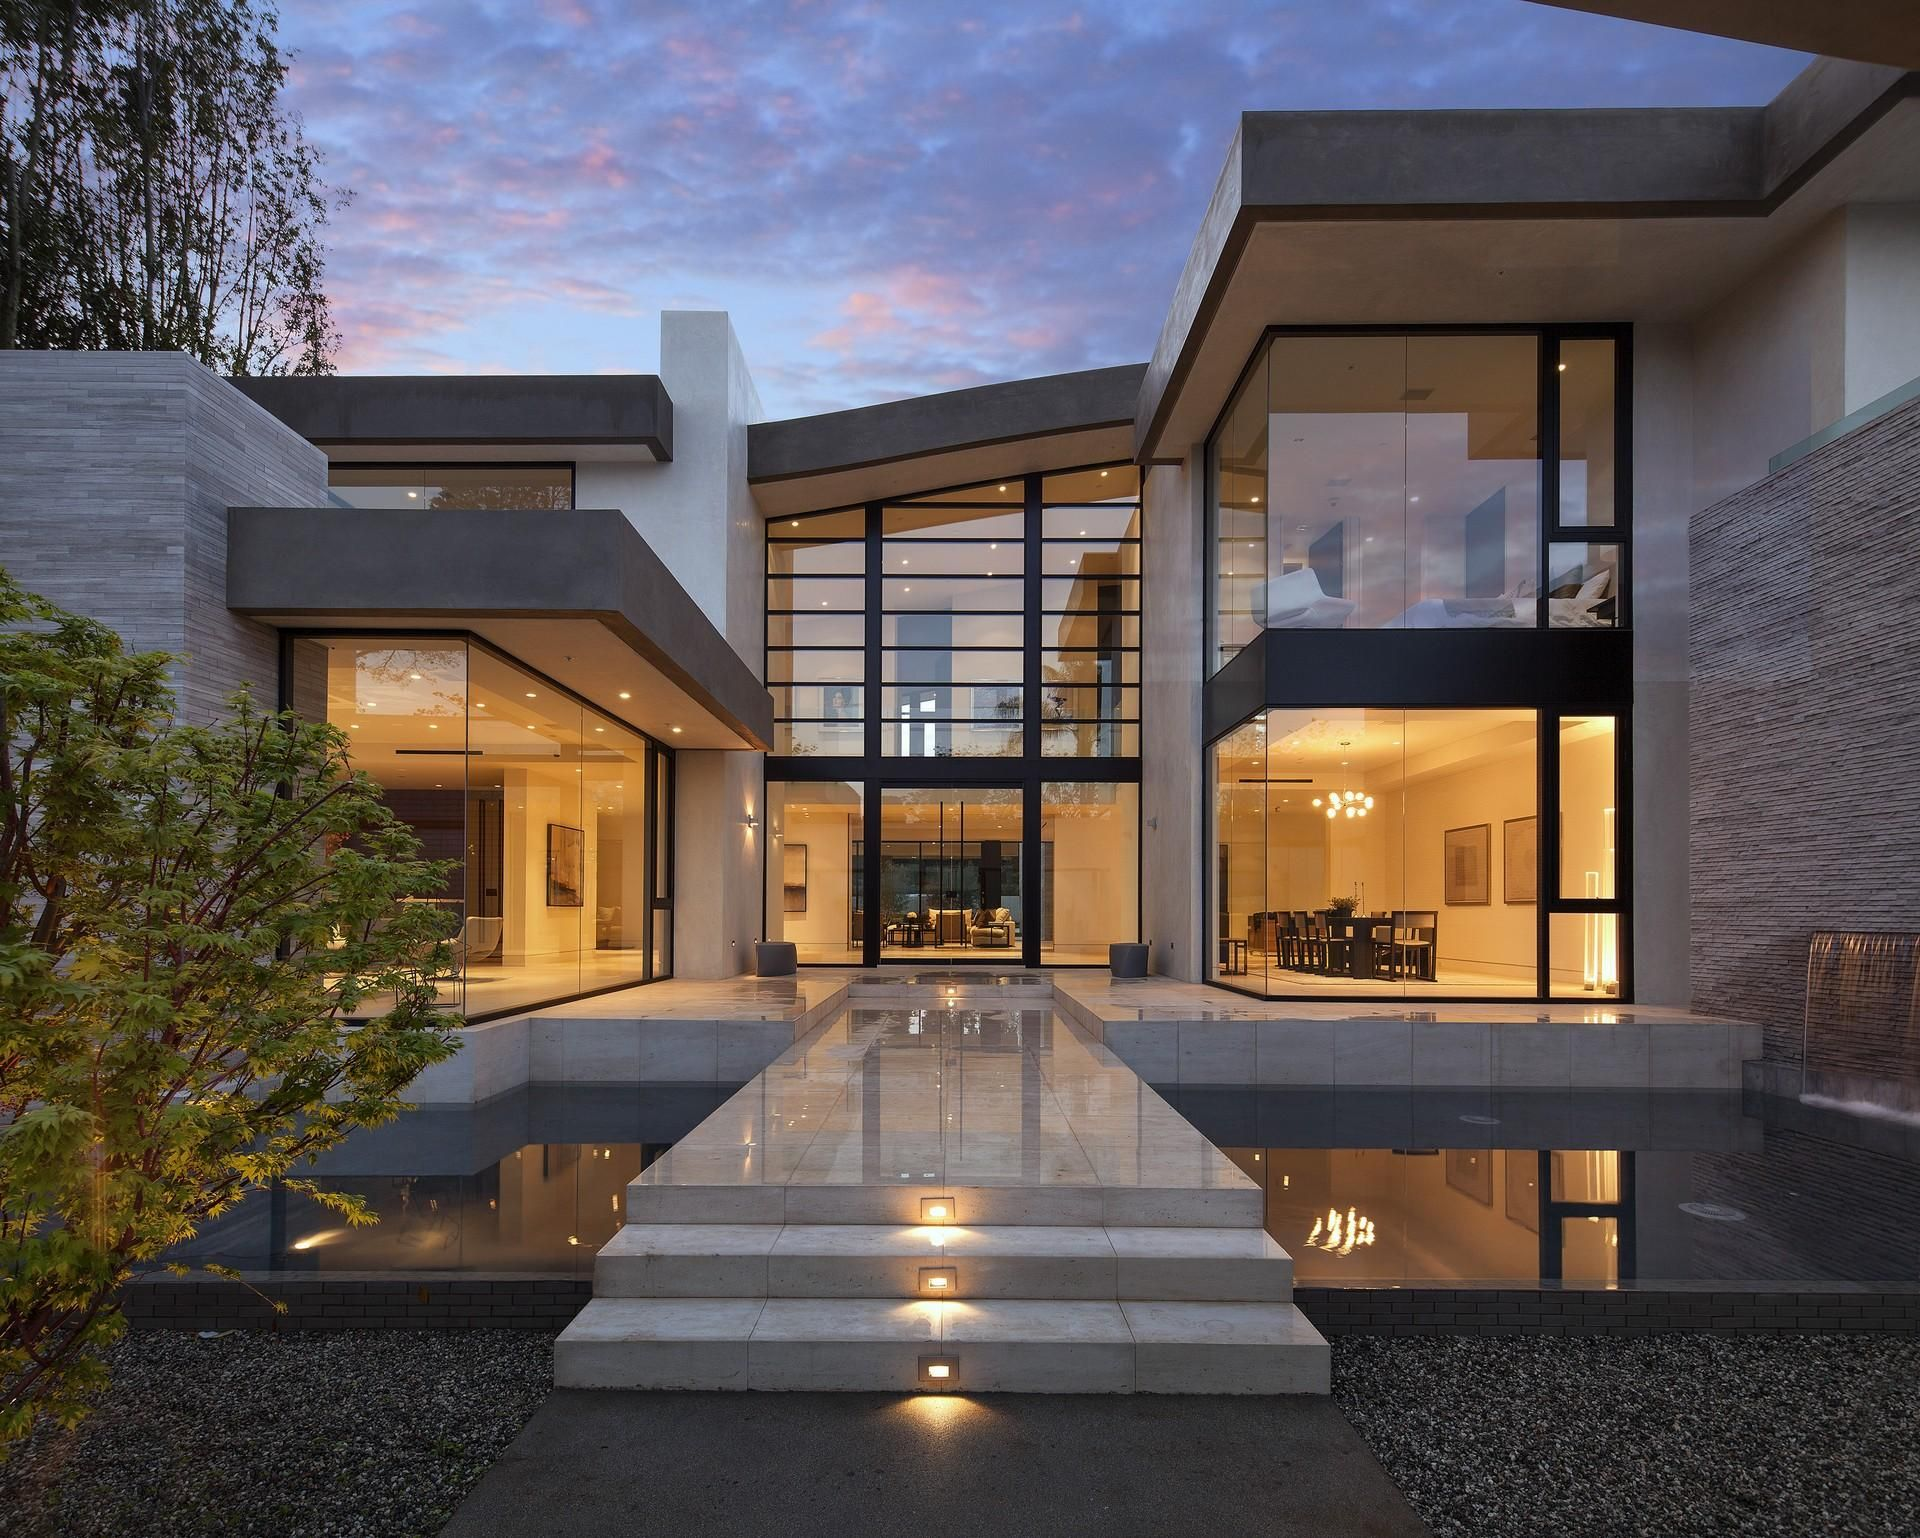 Merveilleux The Architecture Of The Luxurious San Vicente House In California. The  Architects Of McClean Design Completed This House In California For A  Family With Th